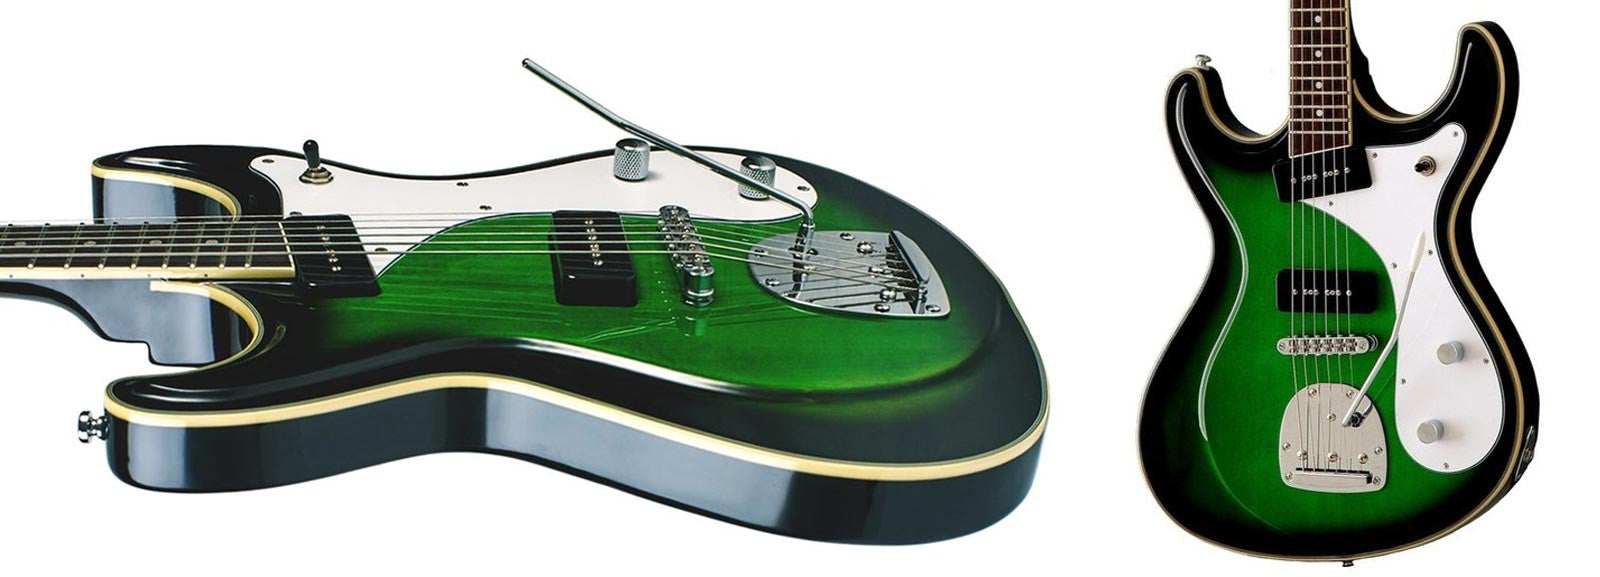 Sidejack Deluxe - Green Burst Finish